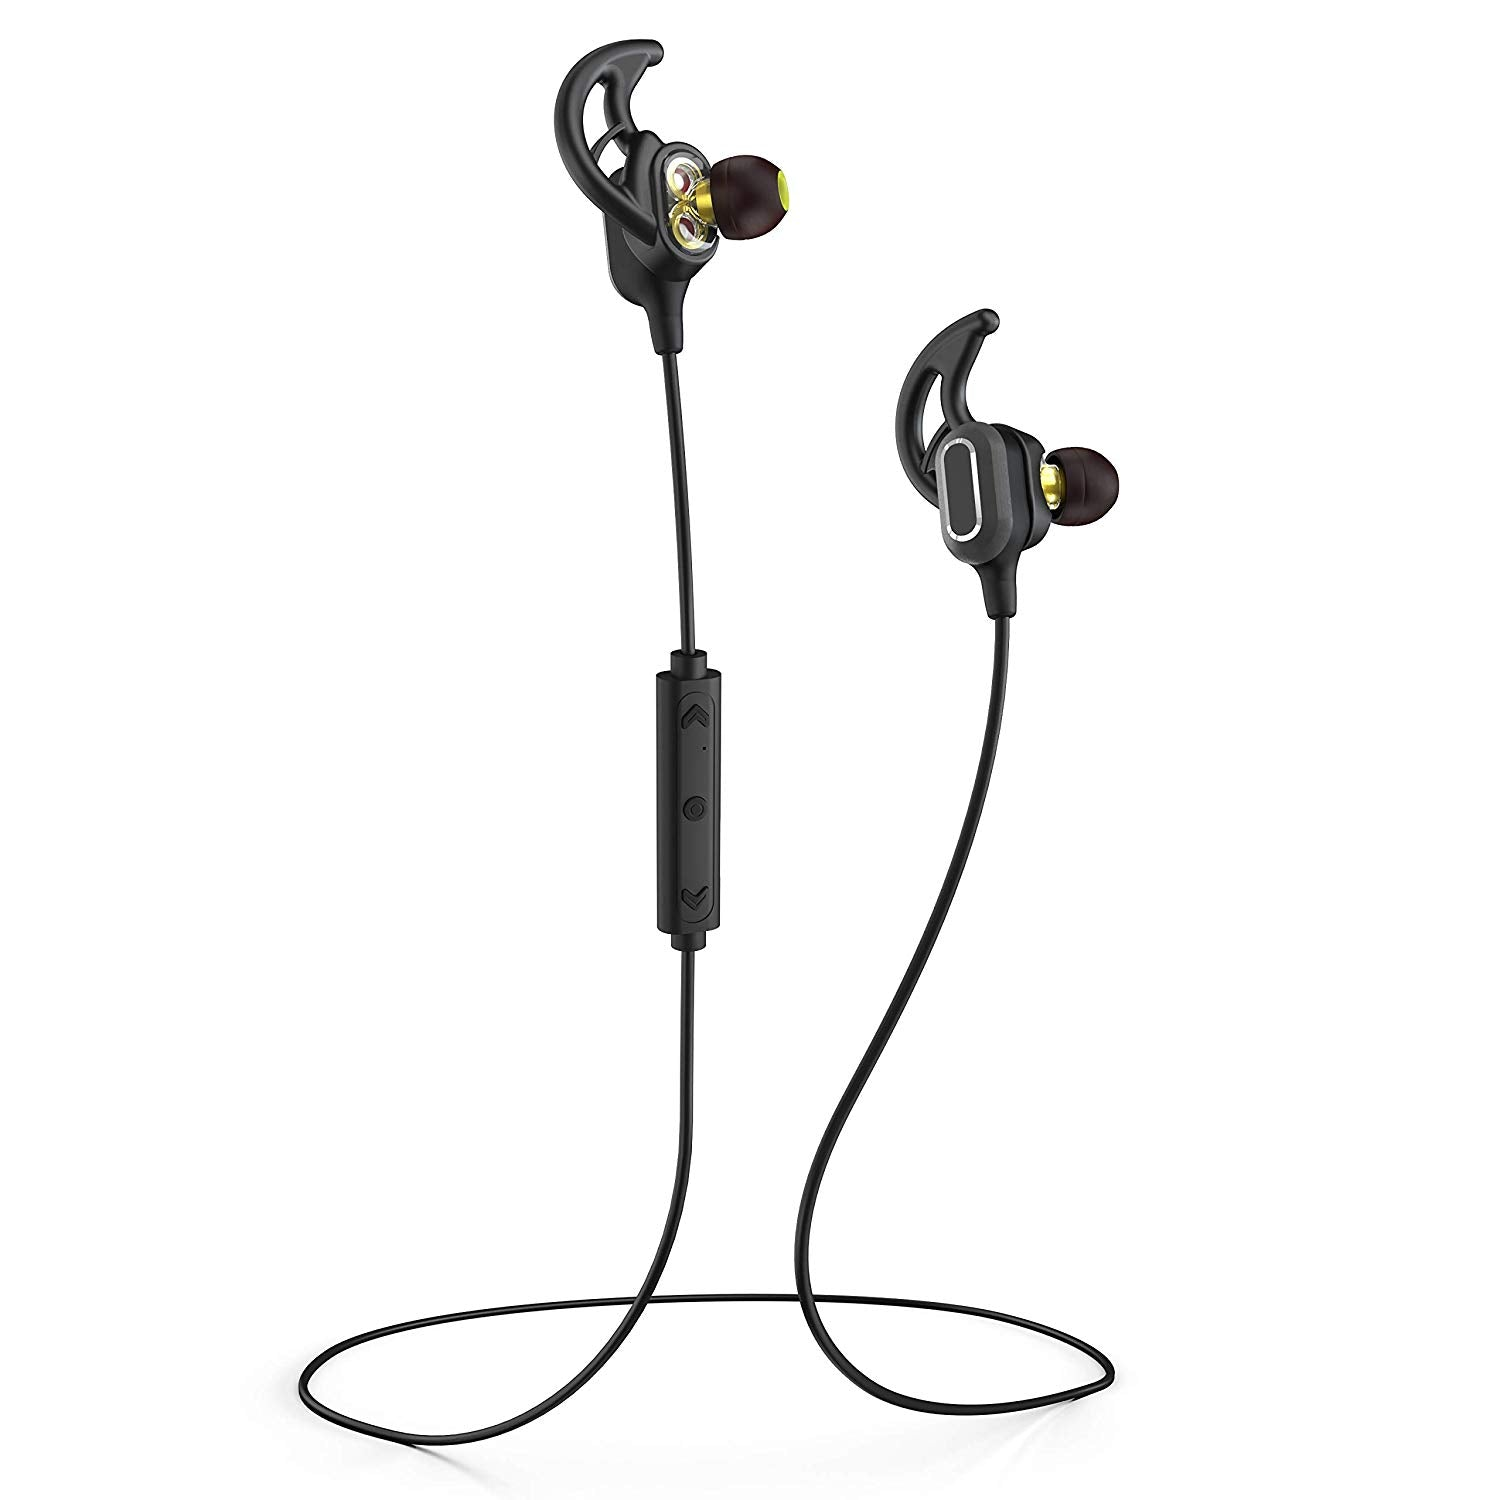 Phaiser BHS-780 Bluetooth Headphones